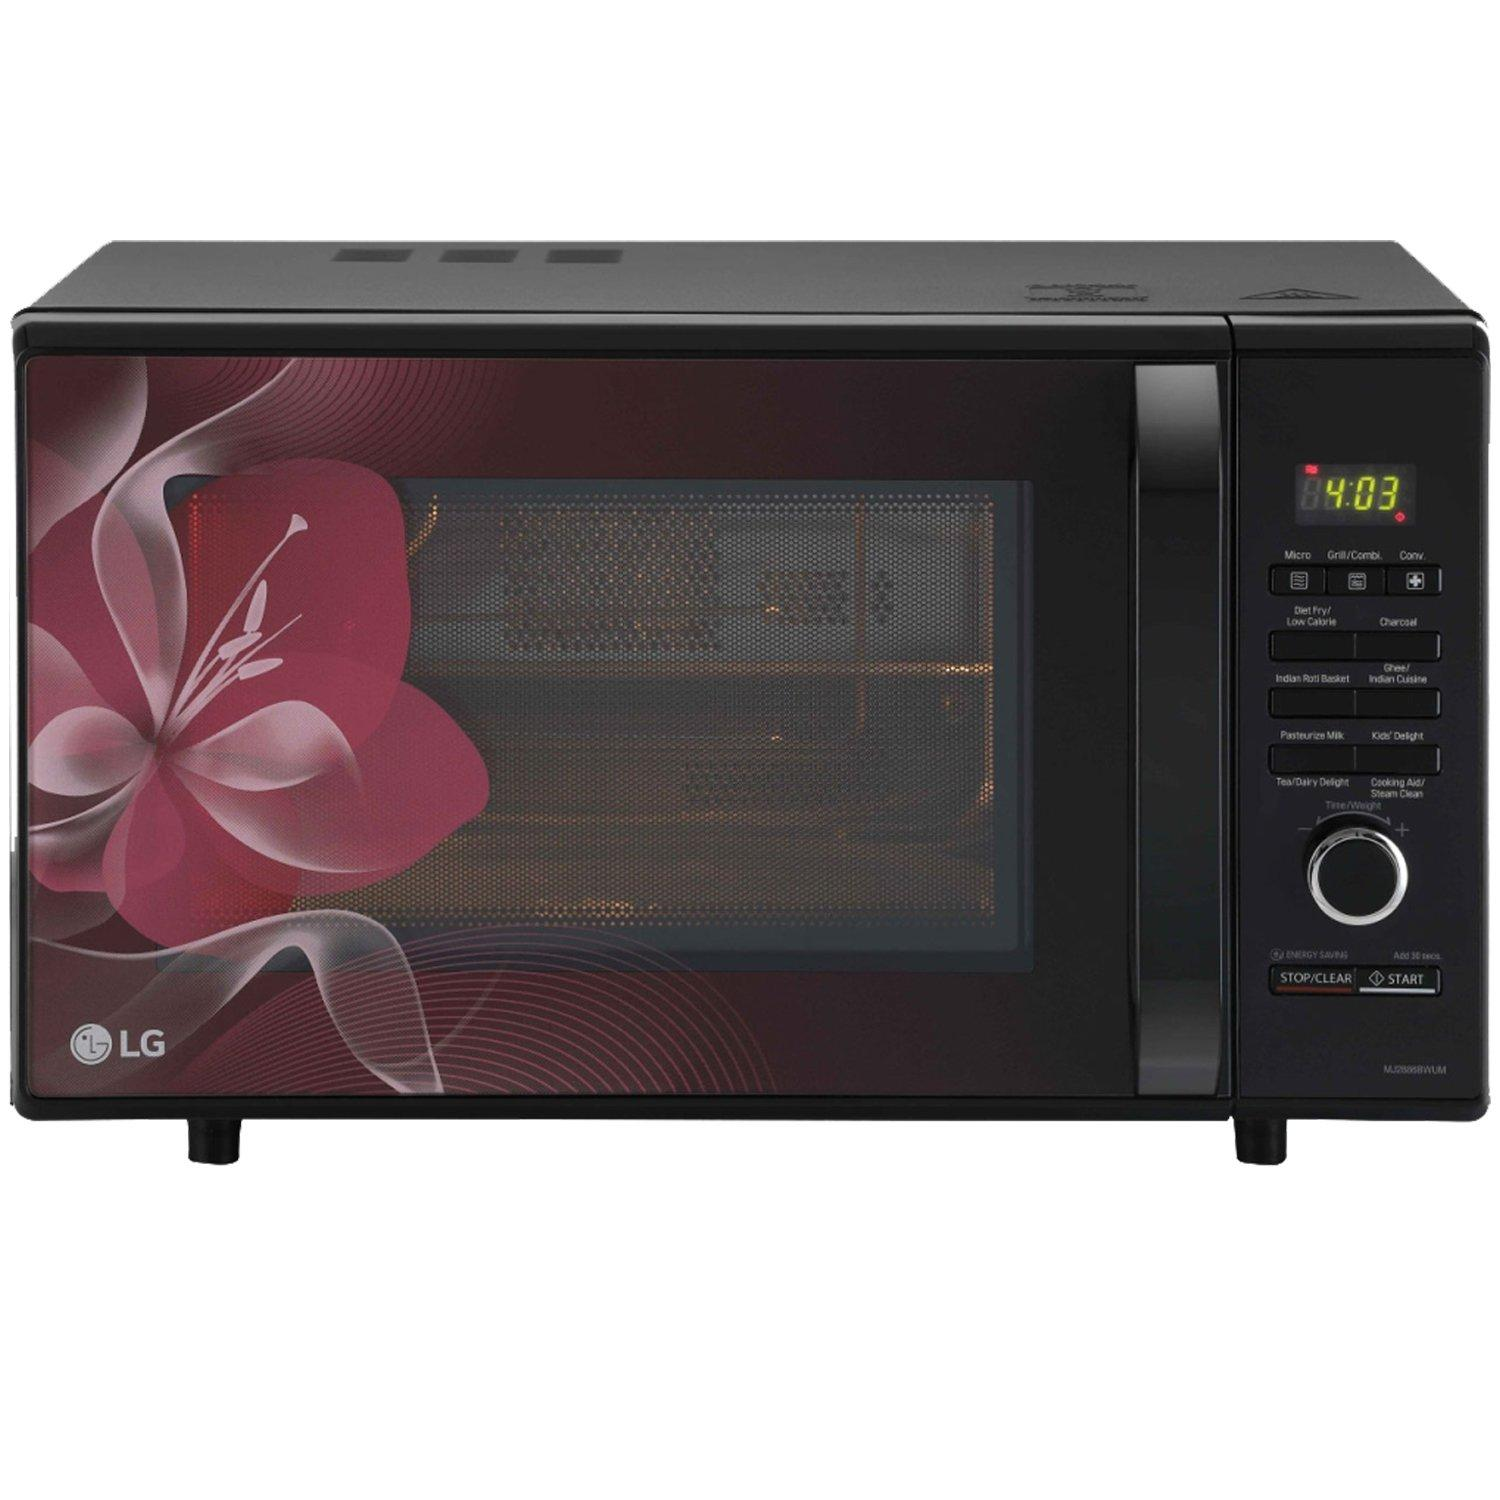 Lg Microwave Oven Convection Mj2886bwum